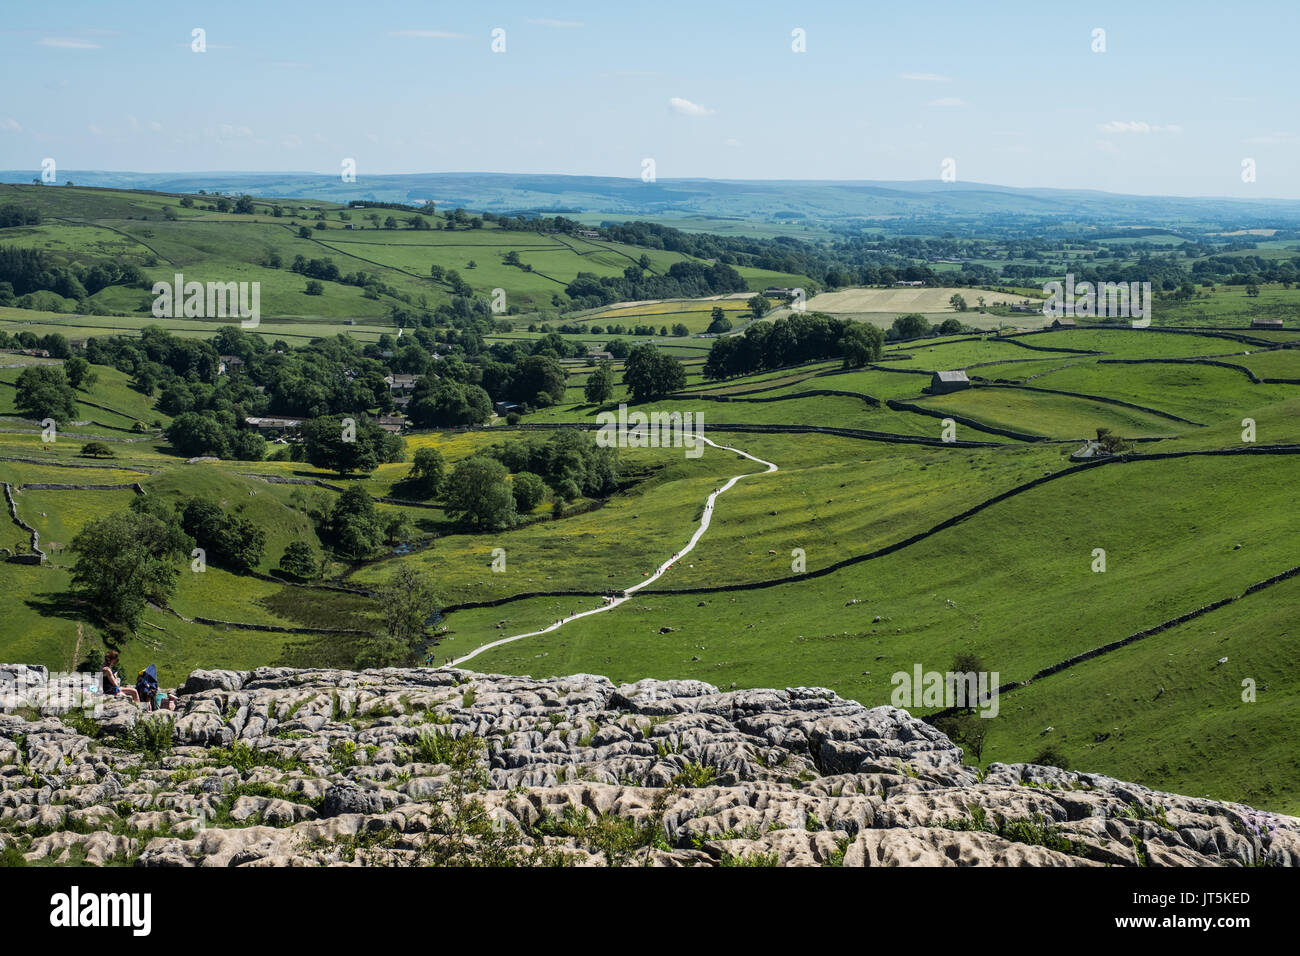 The Exposed Limestone Pavement at Malham Cove. - Stock Image